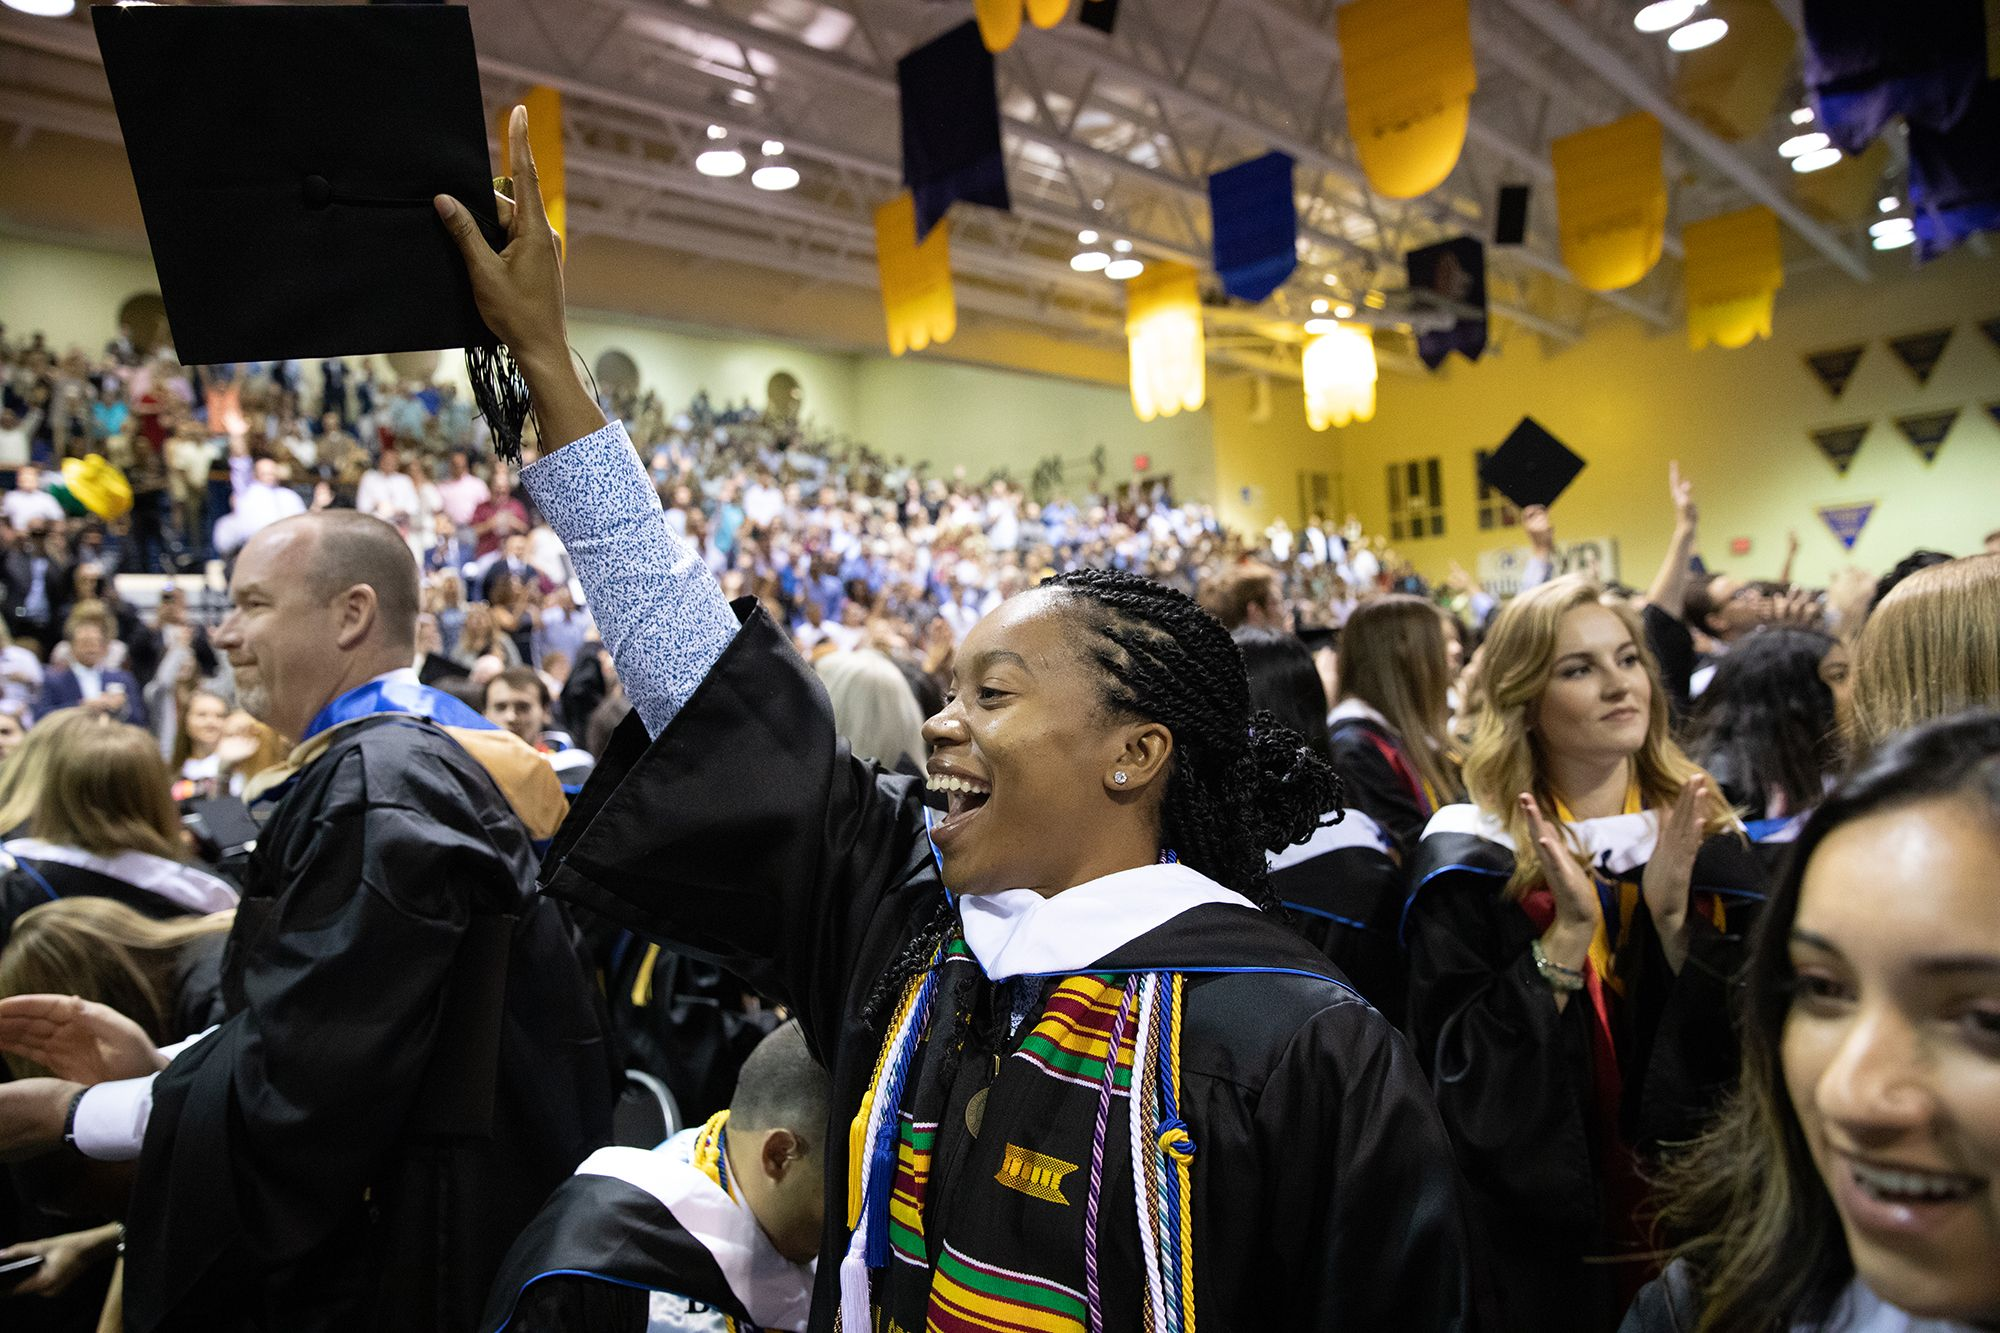 Rollins student holding up diploma on graduation day.